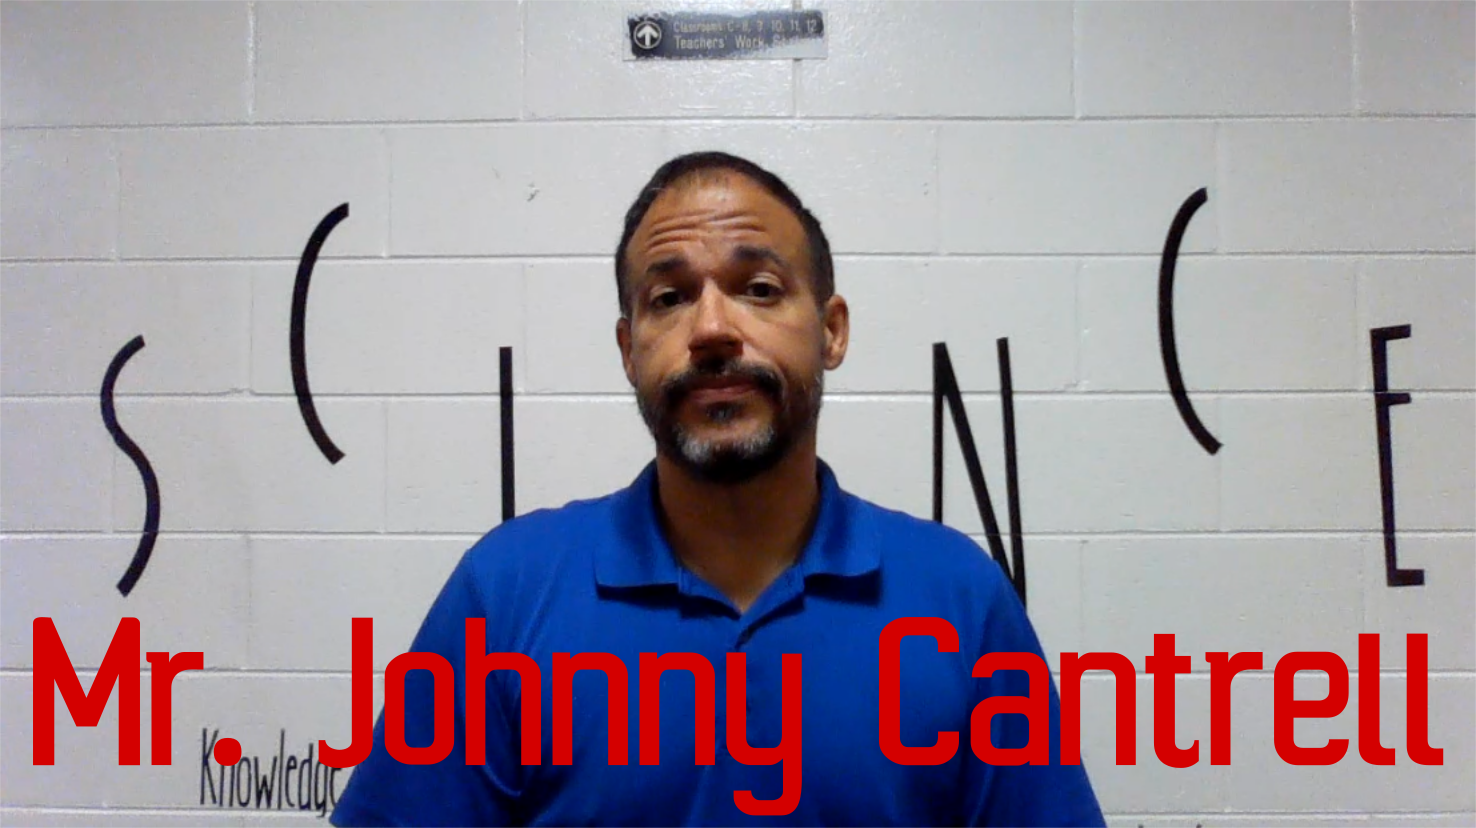 Mr. Johnny Cantrell